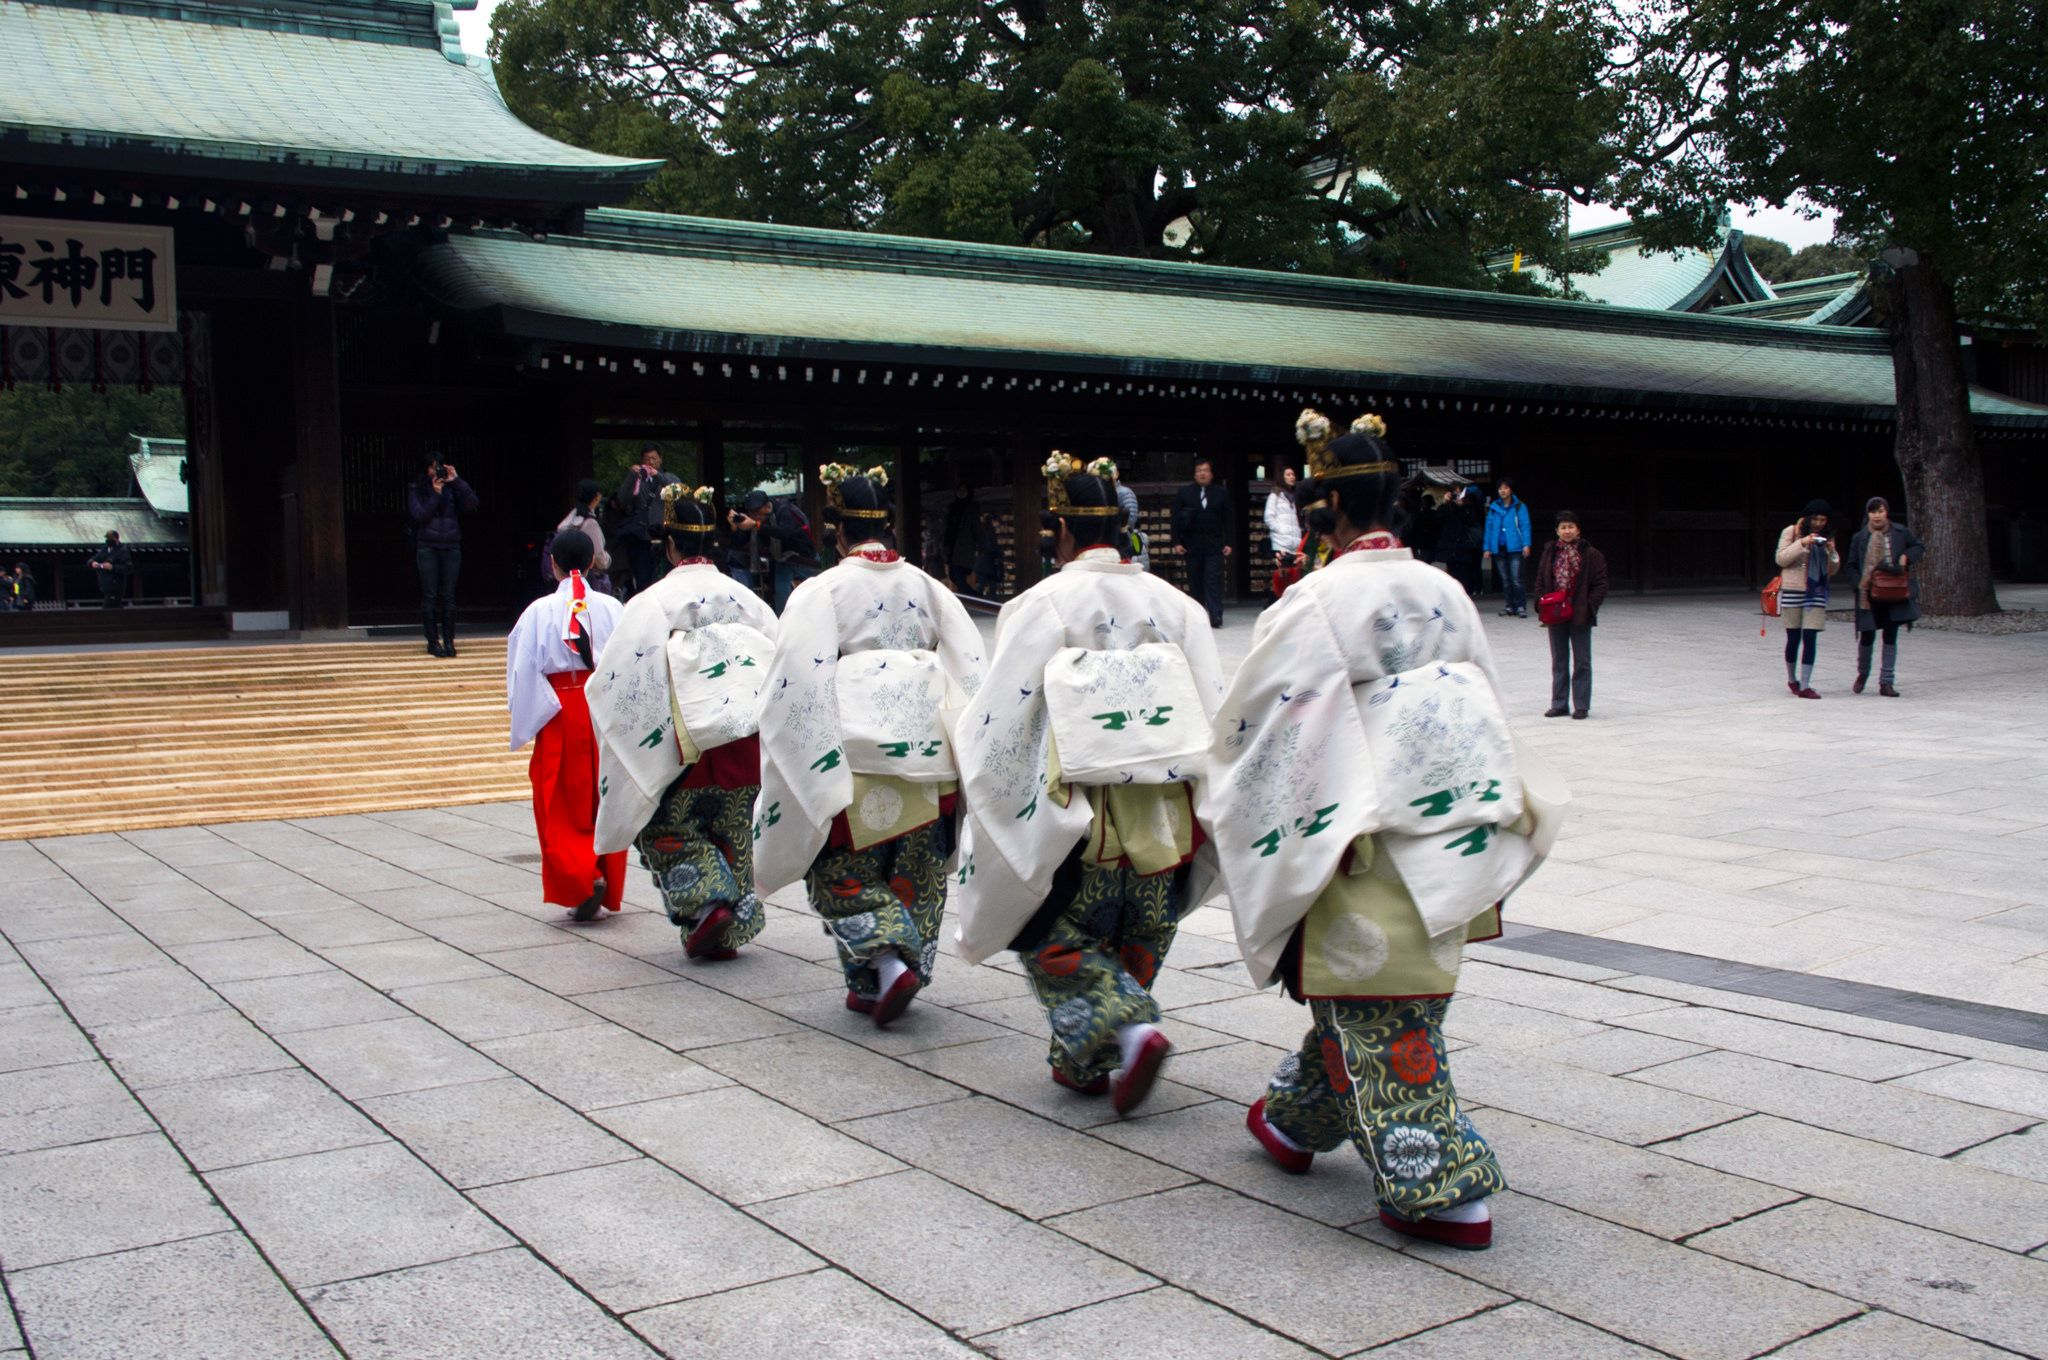 Traditional Japanese wedding ceremony at the Meiji Shrine in Tokyo. #travel #Japan